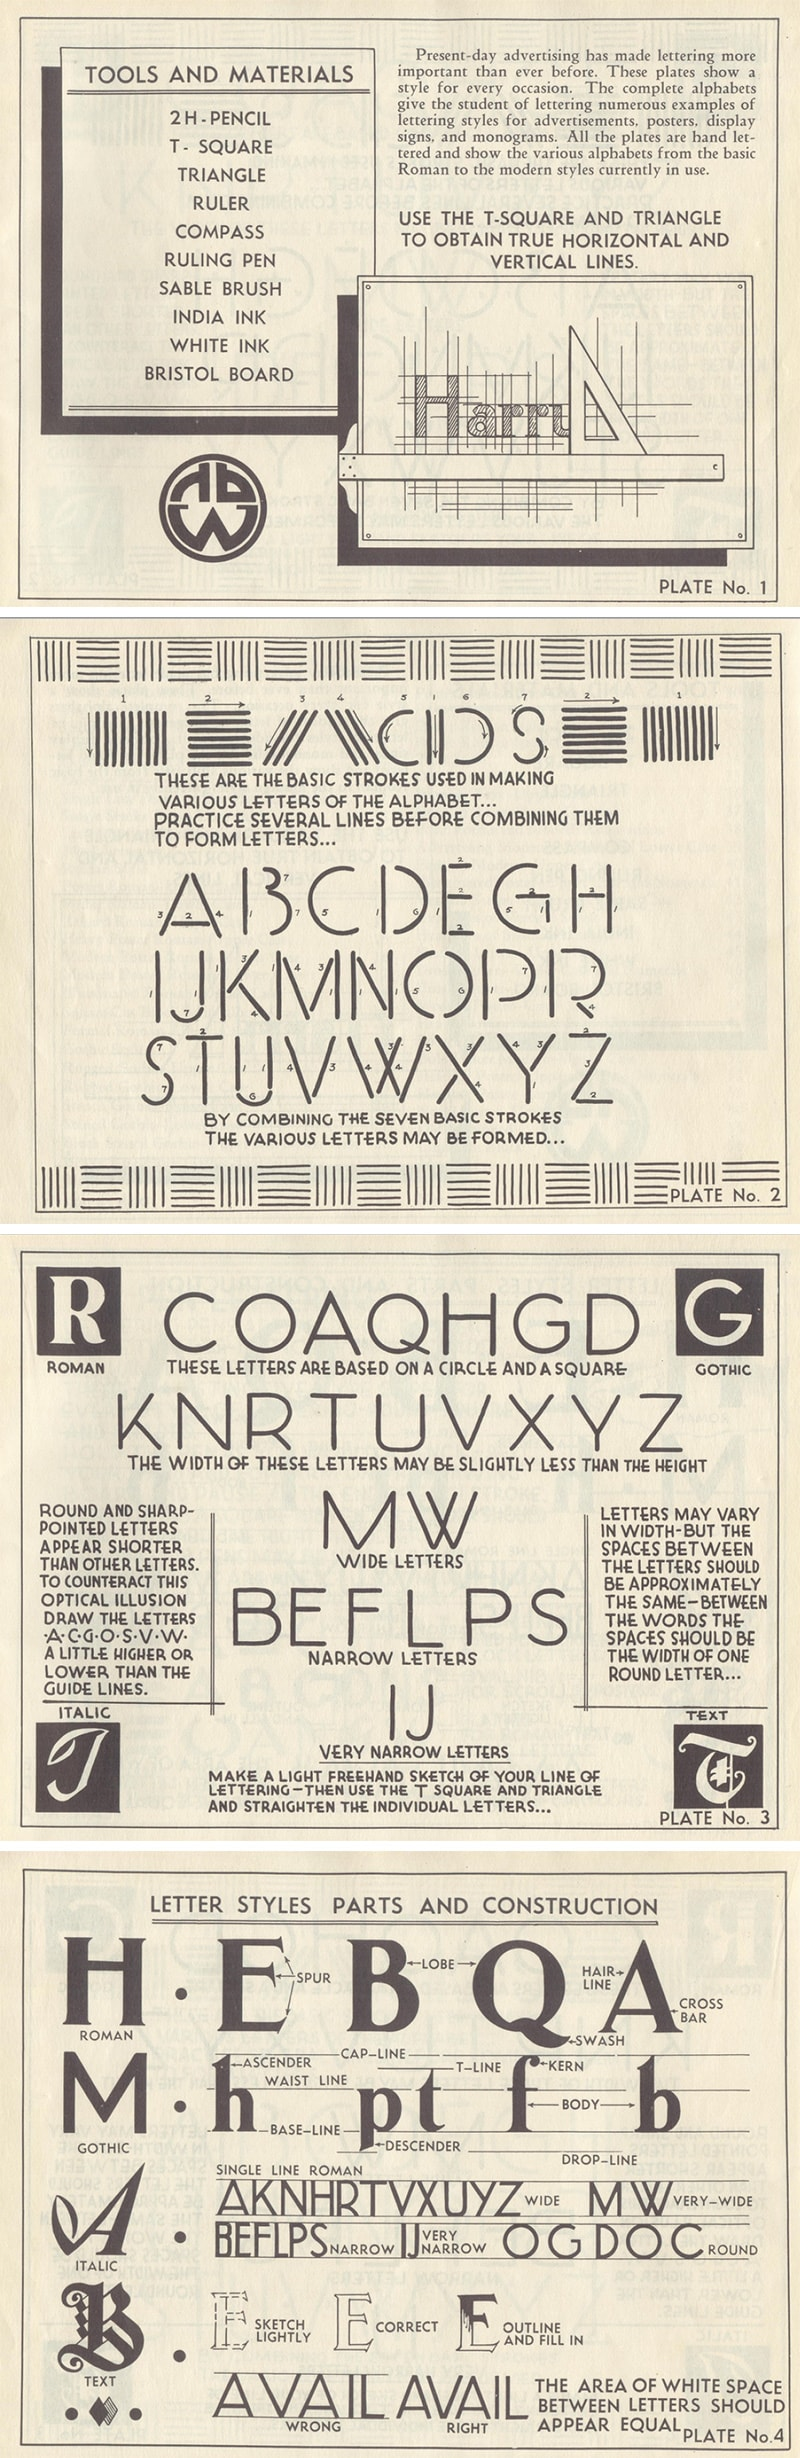 Lettering by Harry B. Wright